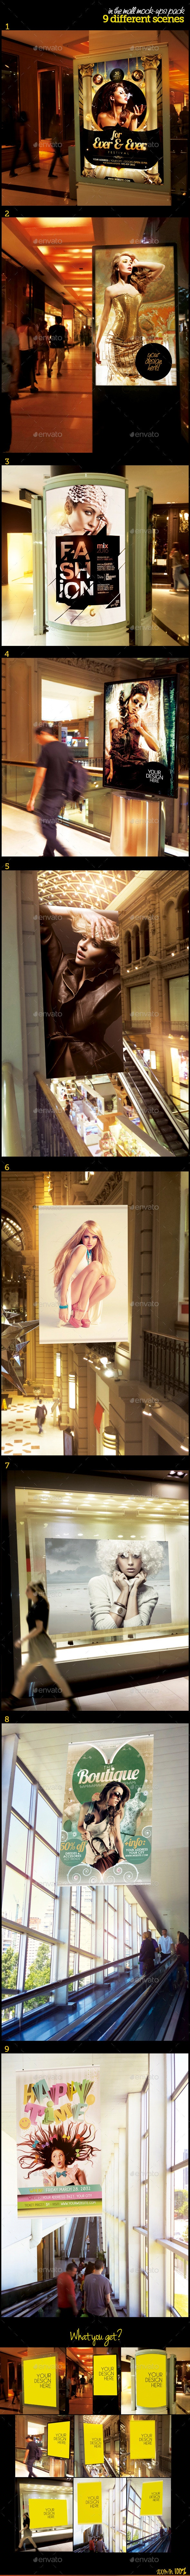 In The Mall Mock-Ups Pack - Posters Print